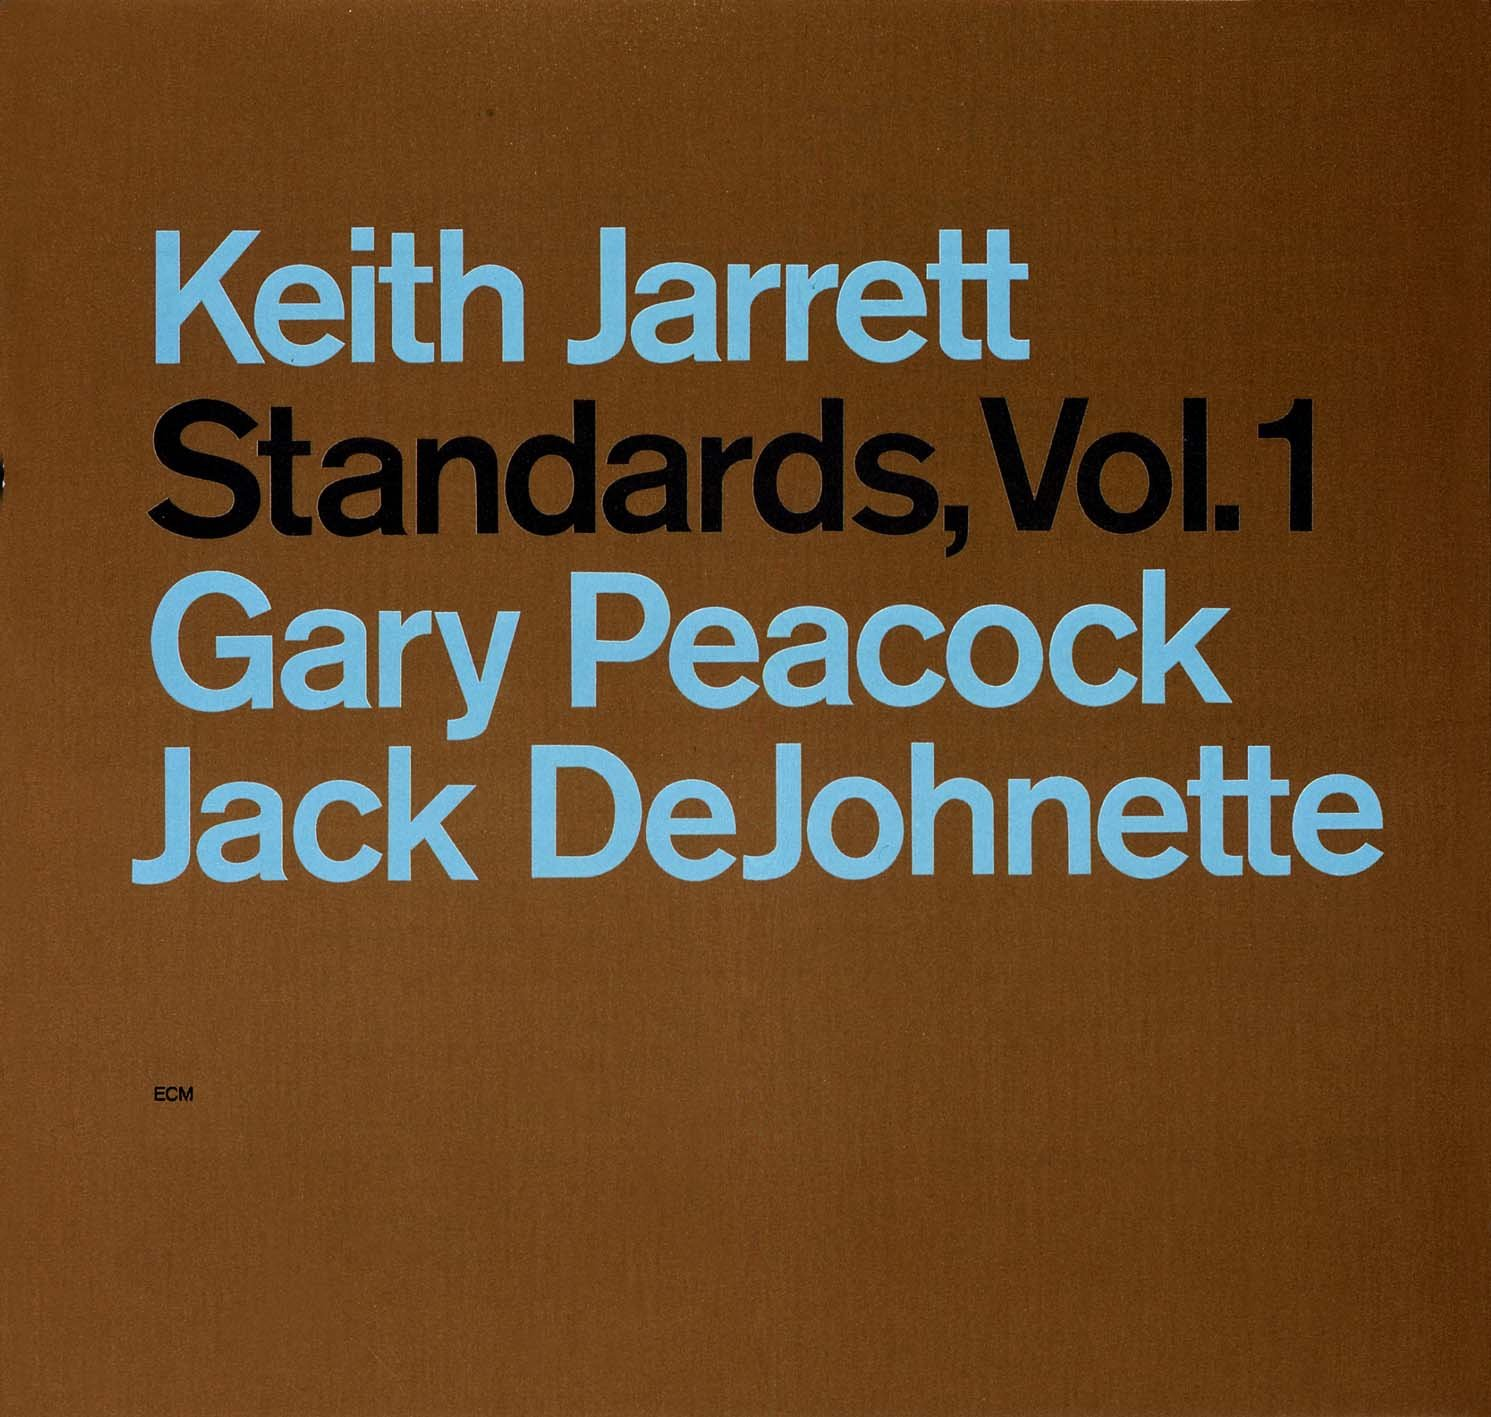 「standards Vol.1 Keith jarrett]」の画像検索結果